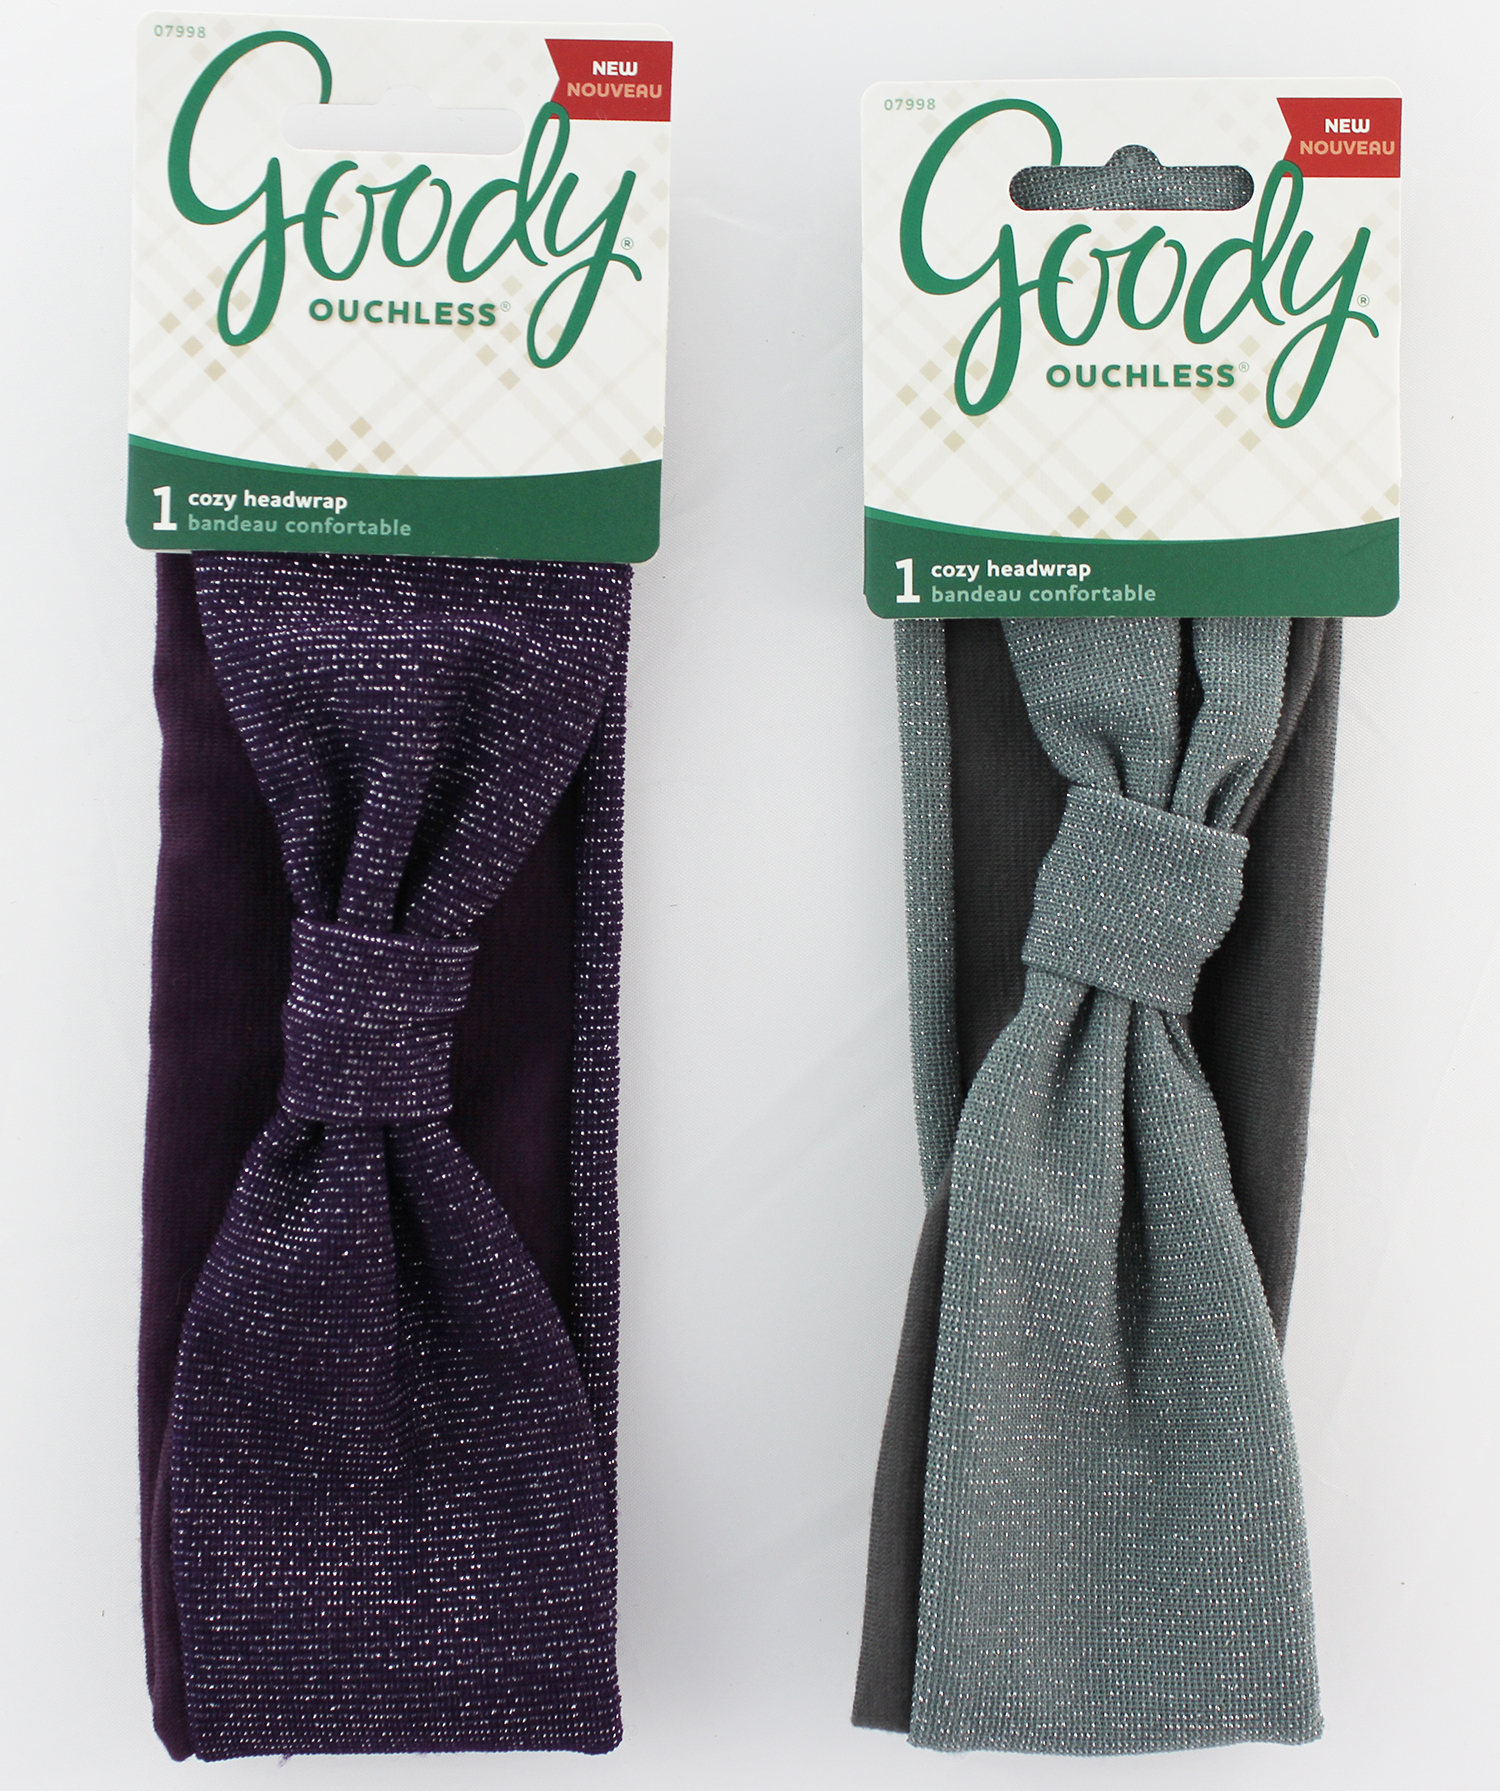 Goody Ouchless Soft Cozy Headwrap, Assorted Color 1963622 07998